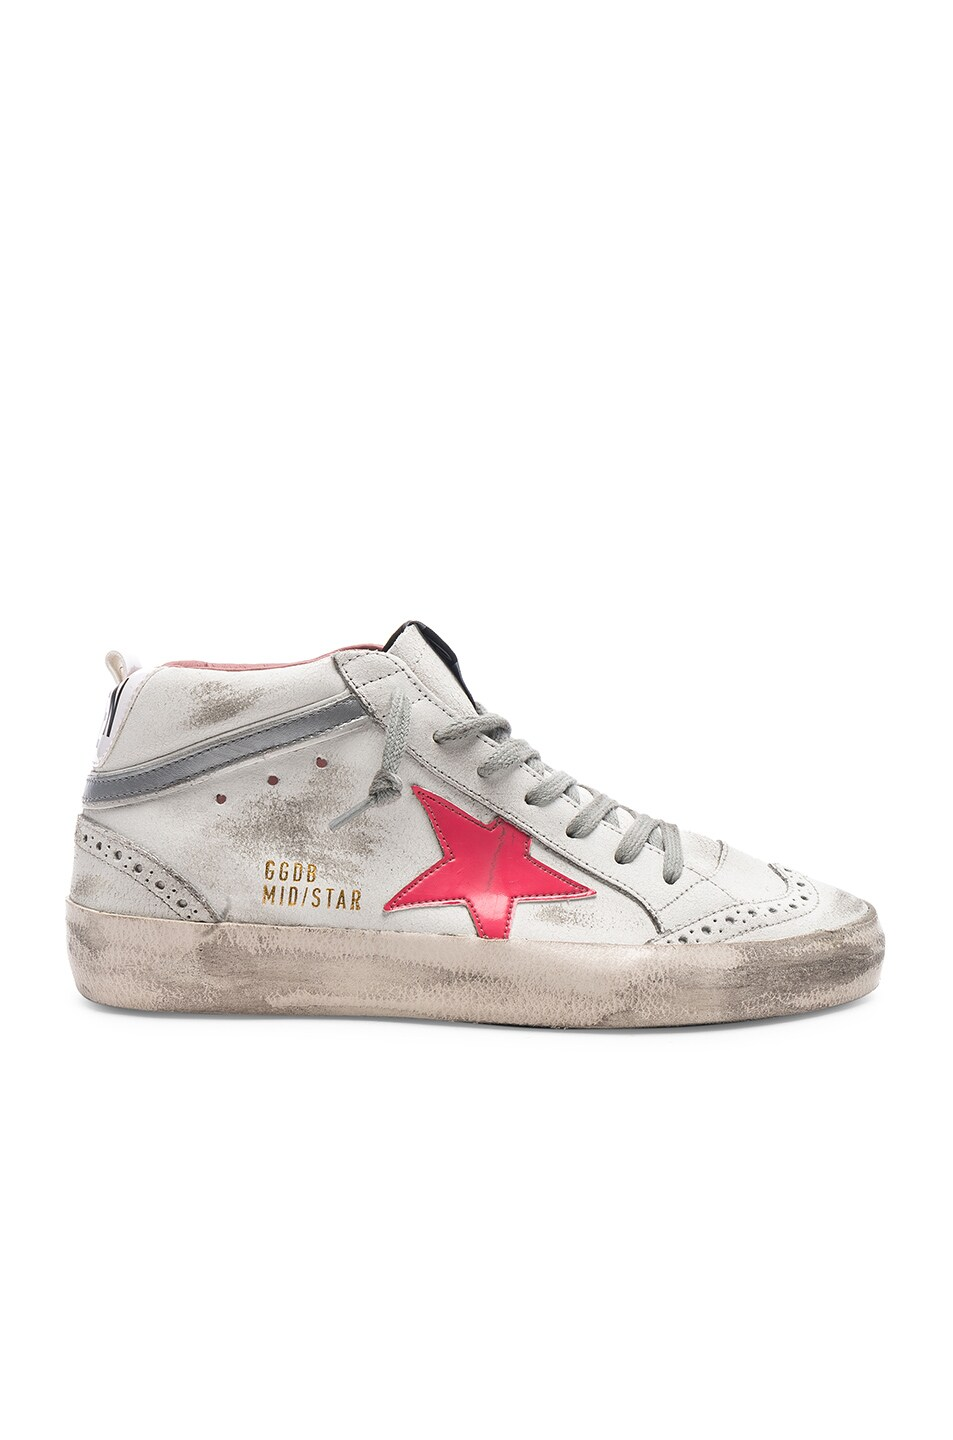 bccbc32f22af Image 1 of Golden Goose Mid Star Sneakers in White   Patent Pink